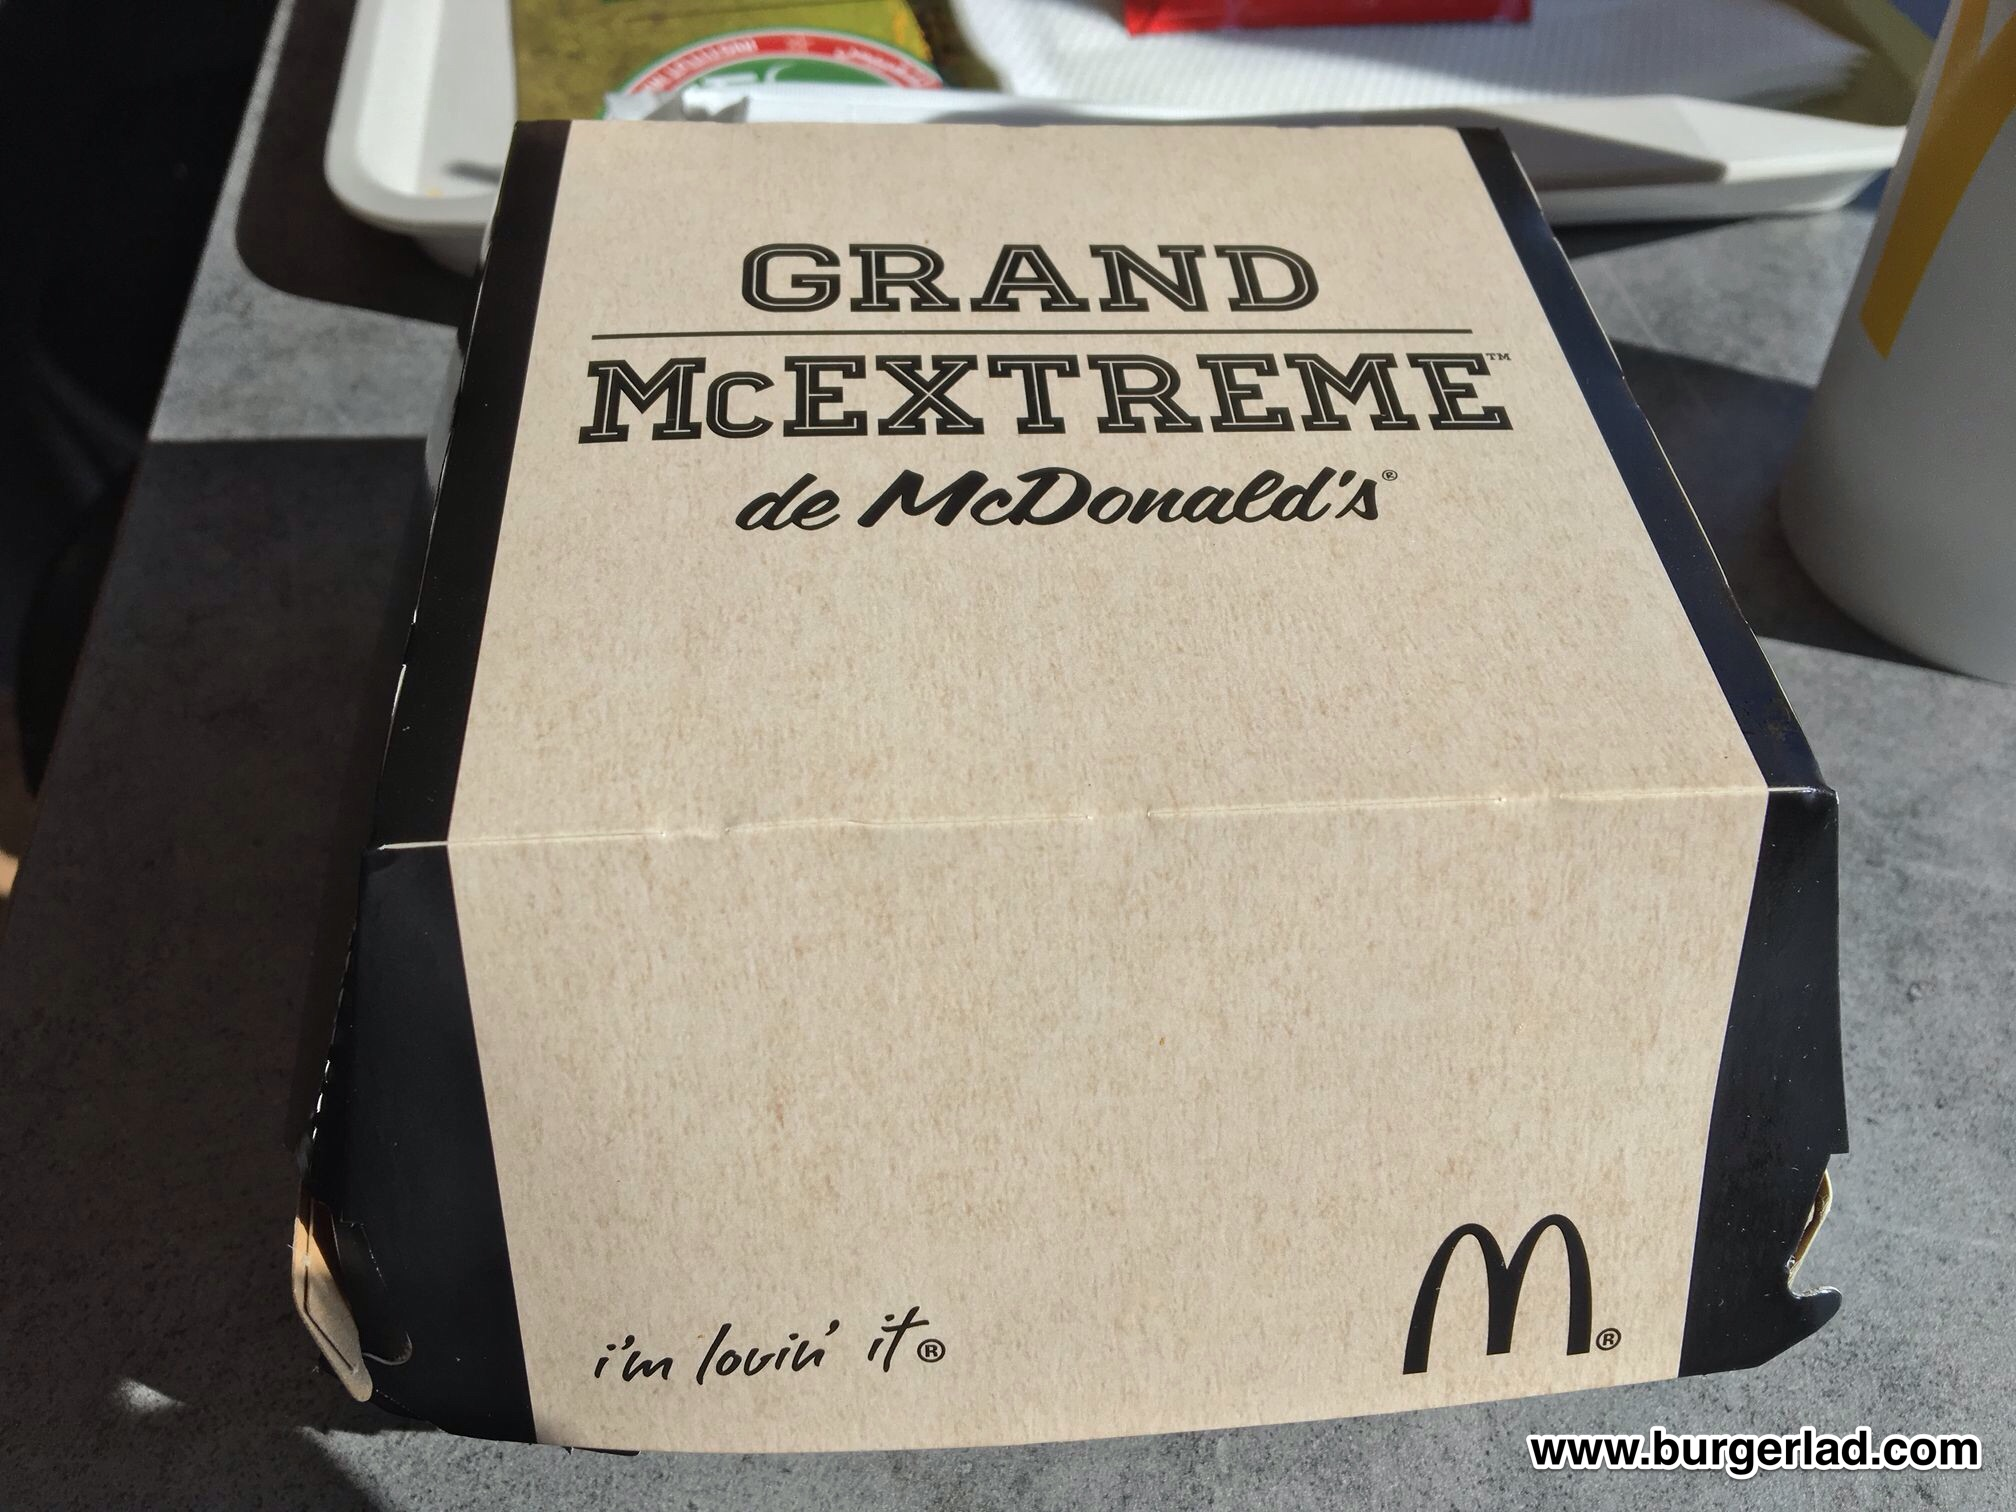 McDonald's Grand McExtreme